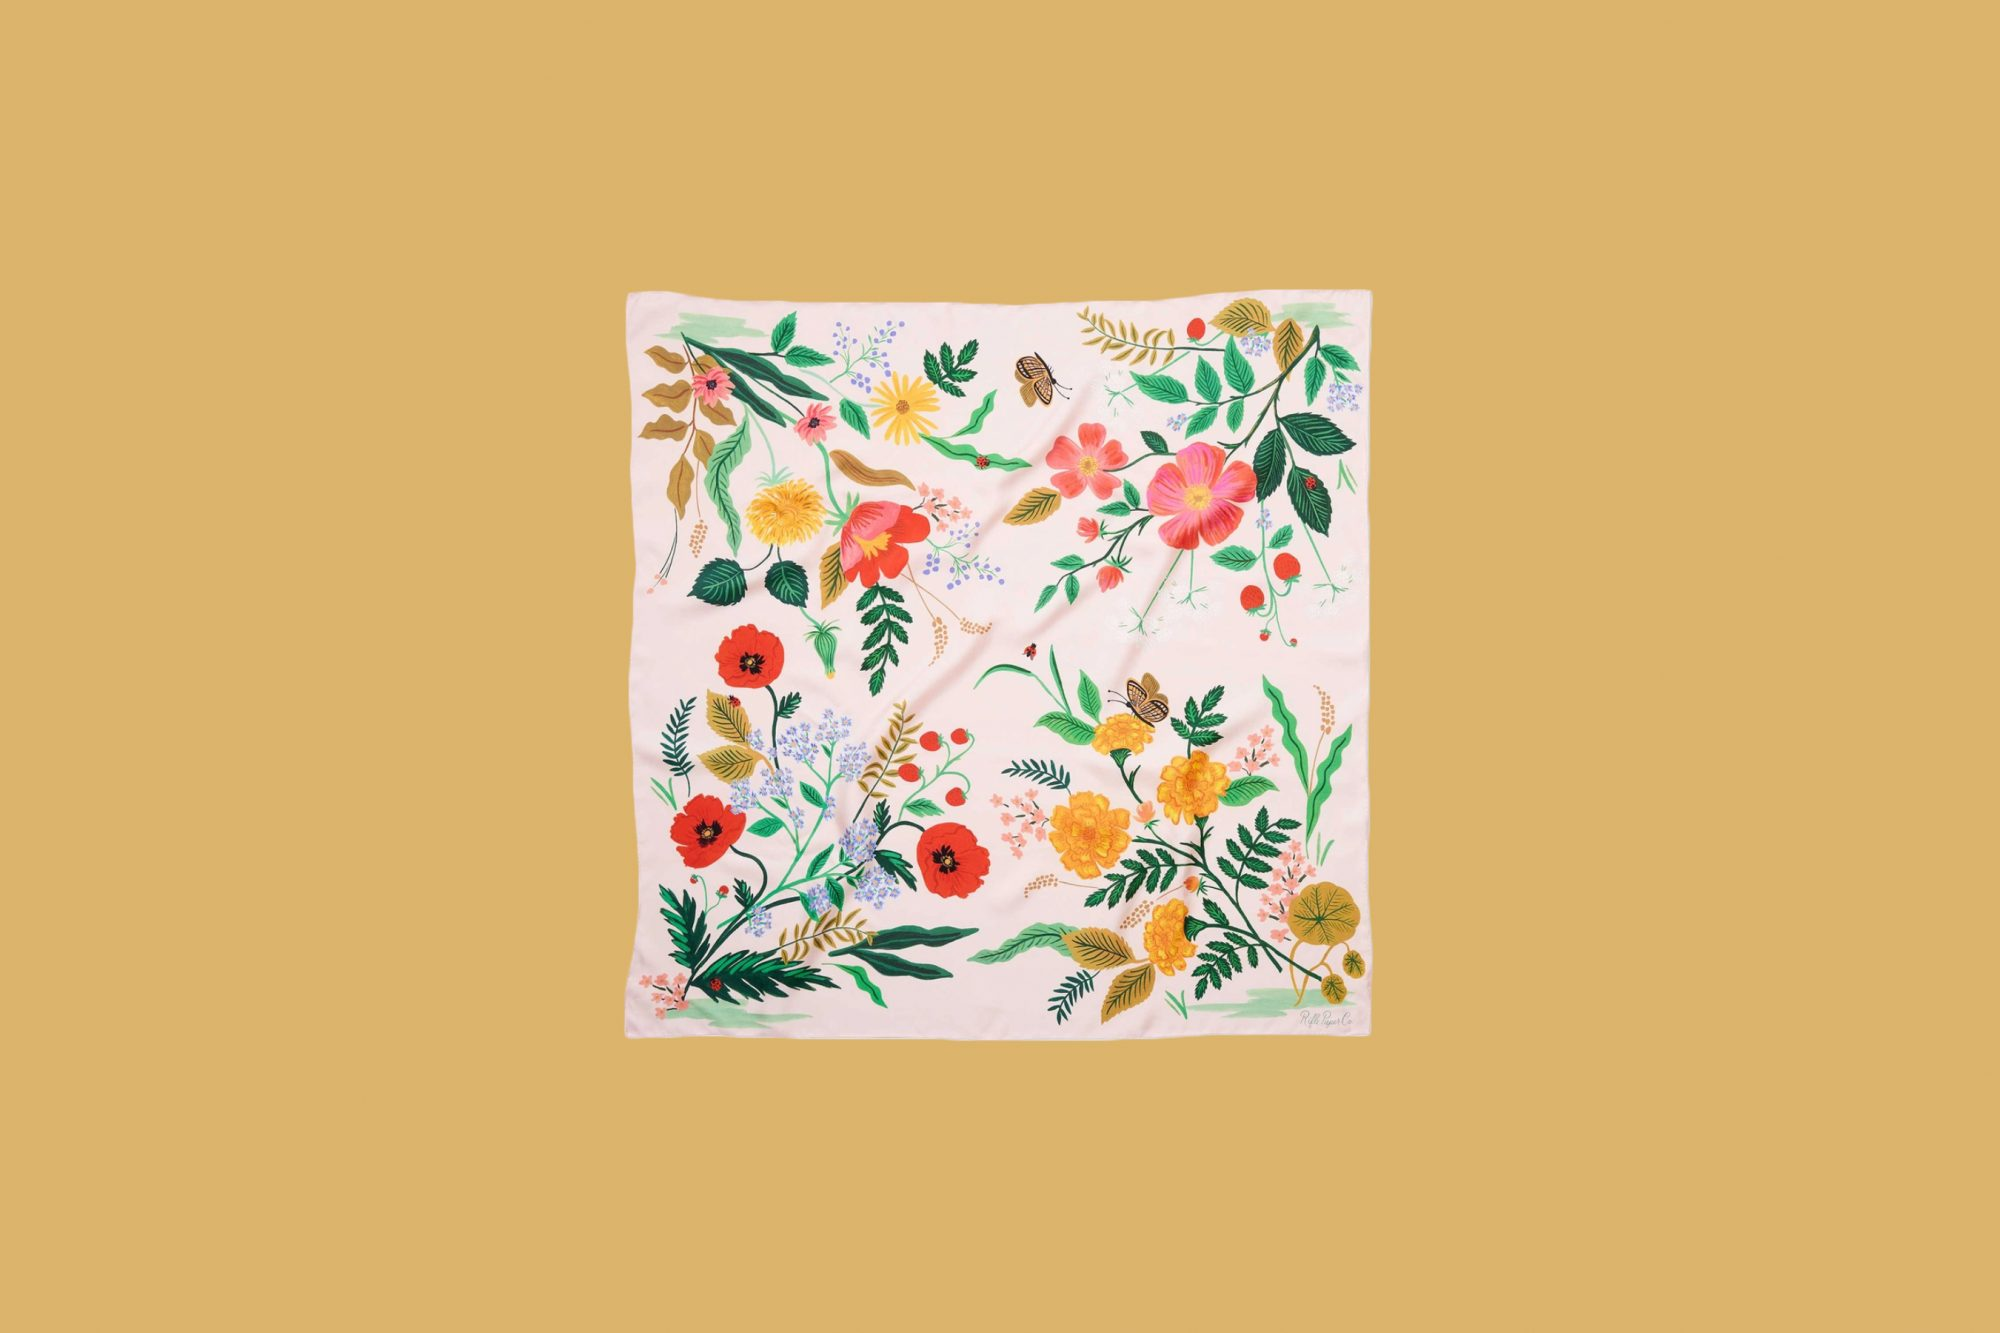 Rifle Paper Co. Silk Scarf in Botanical